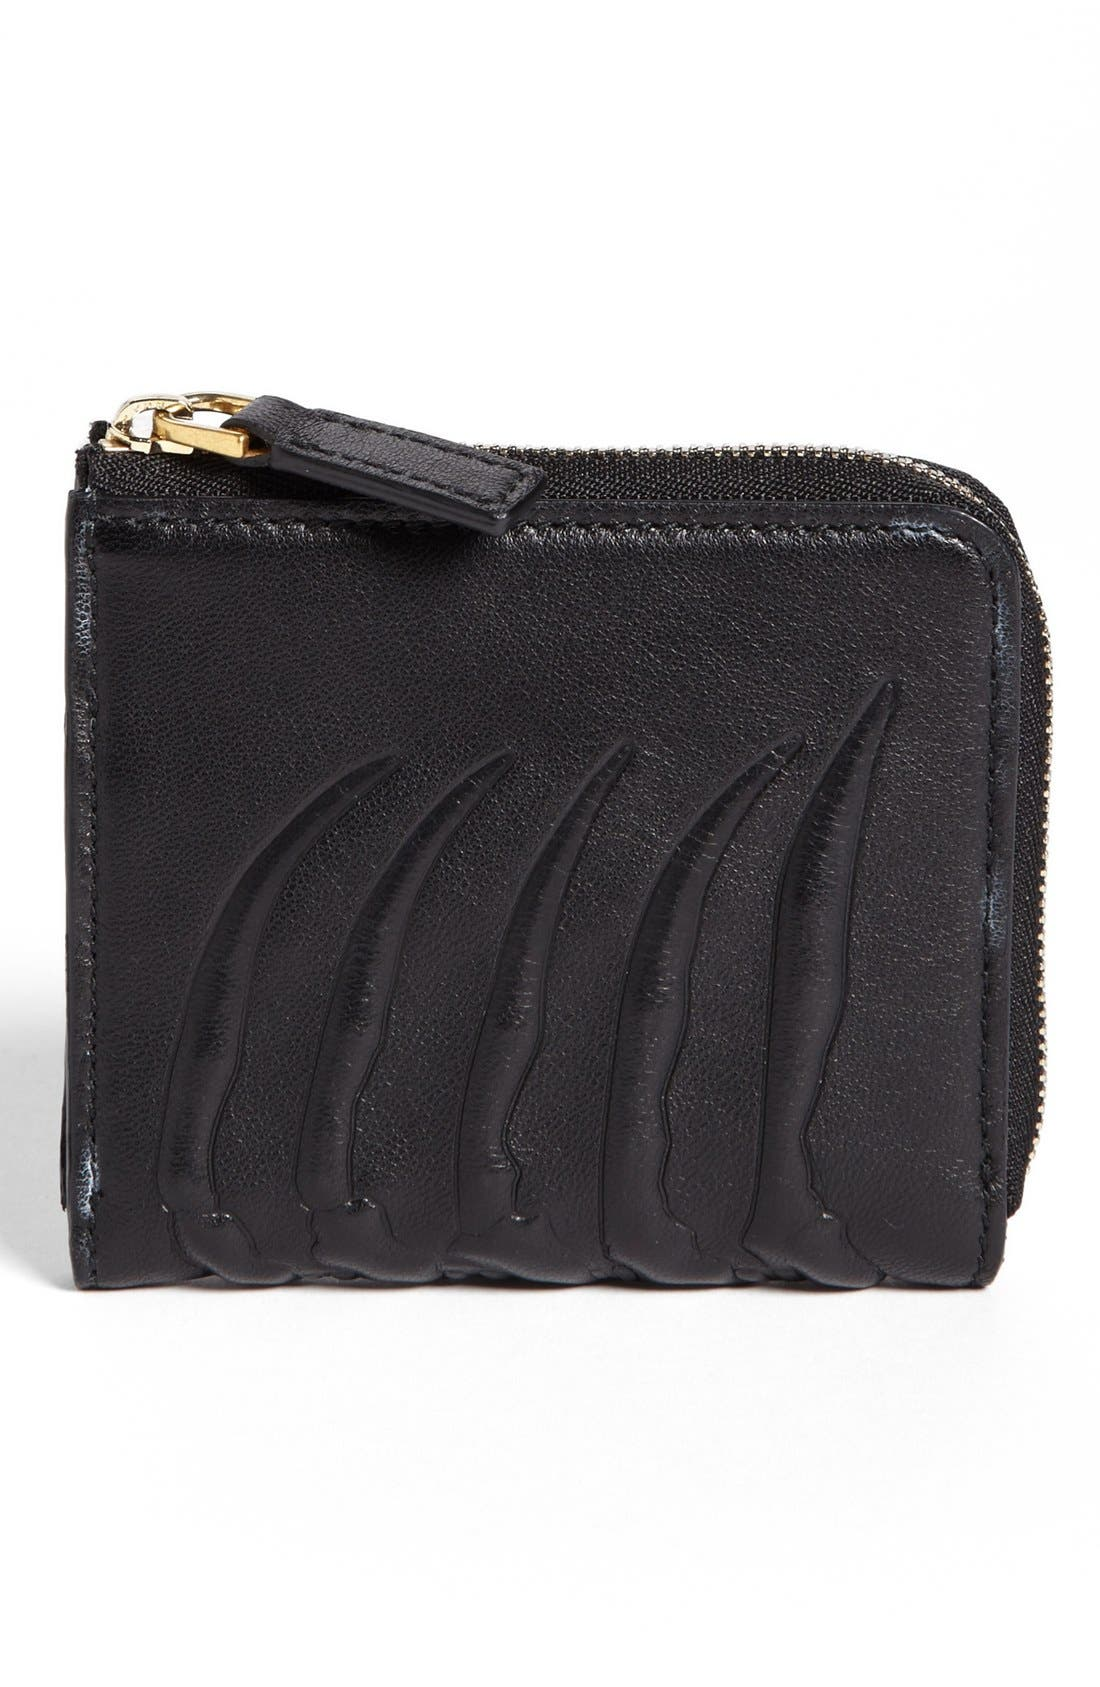 Alternate Image 1 Selected - Alexander McQueen Rib Cage Leather Half Zip Wallet